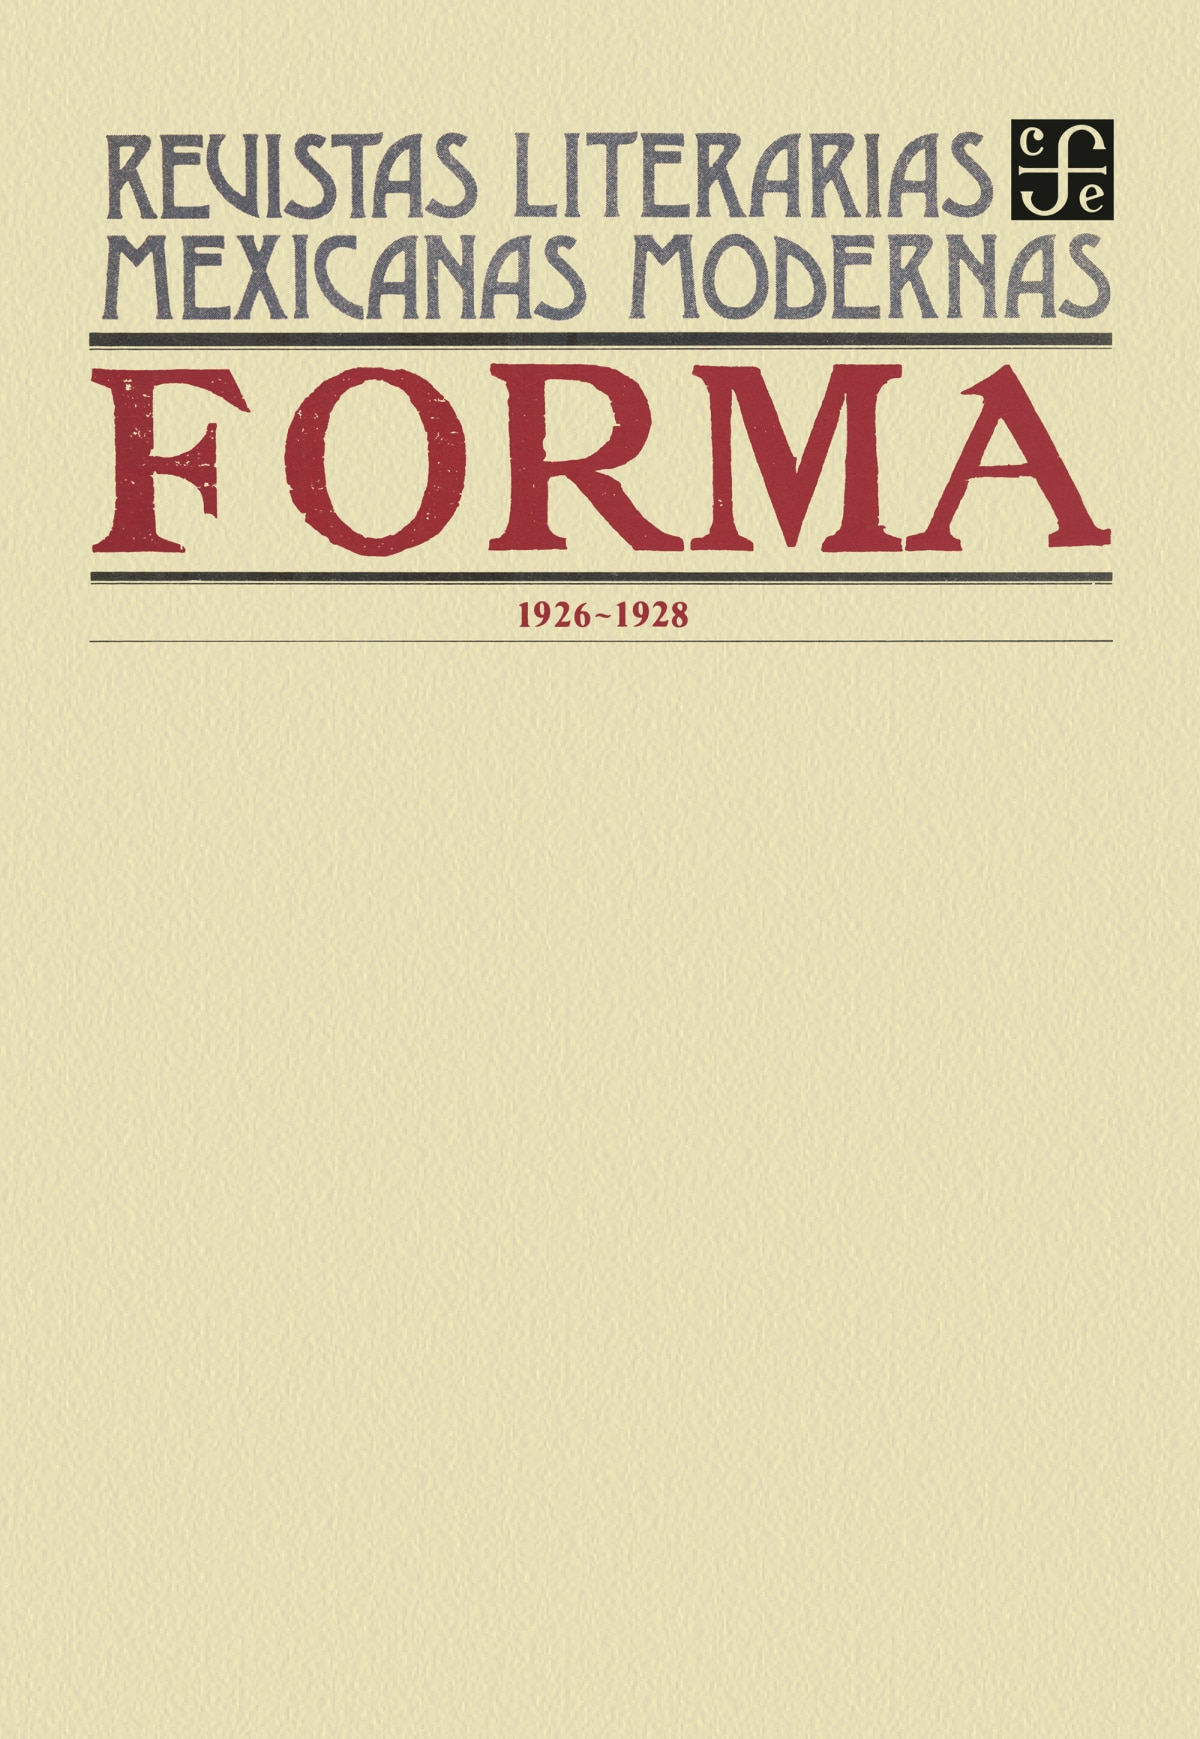 Forma, 1926-1928